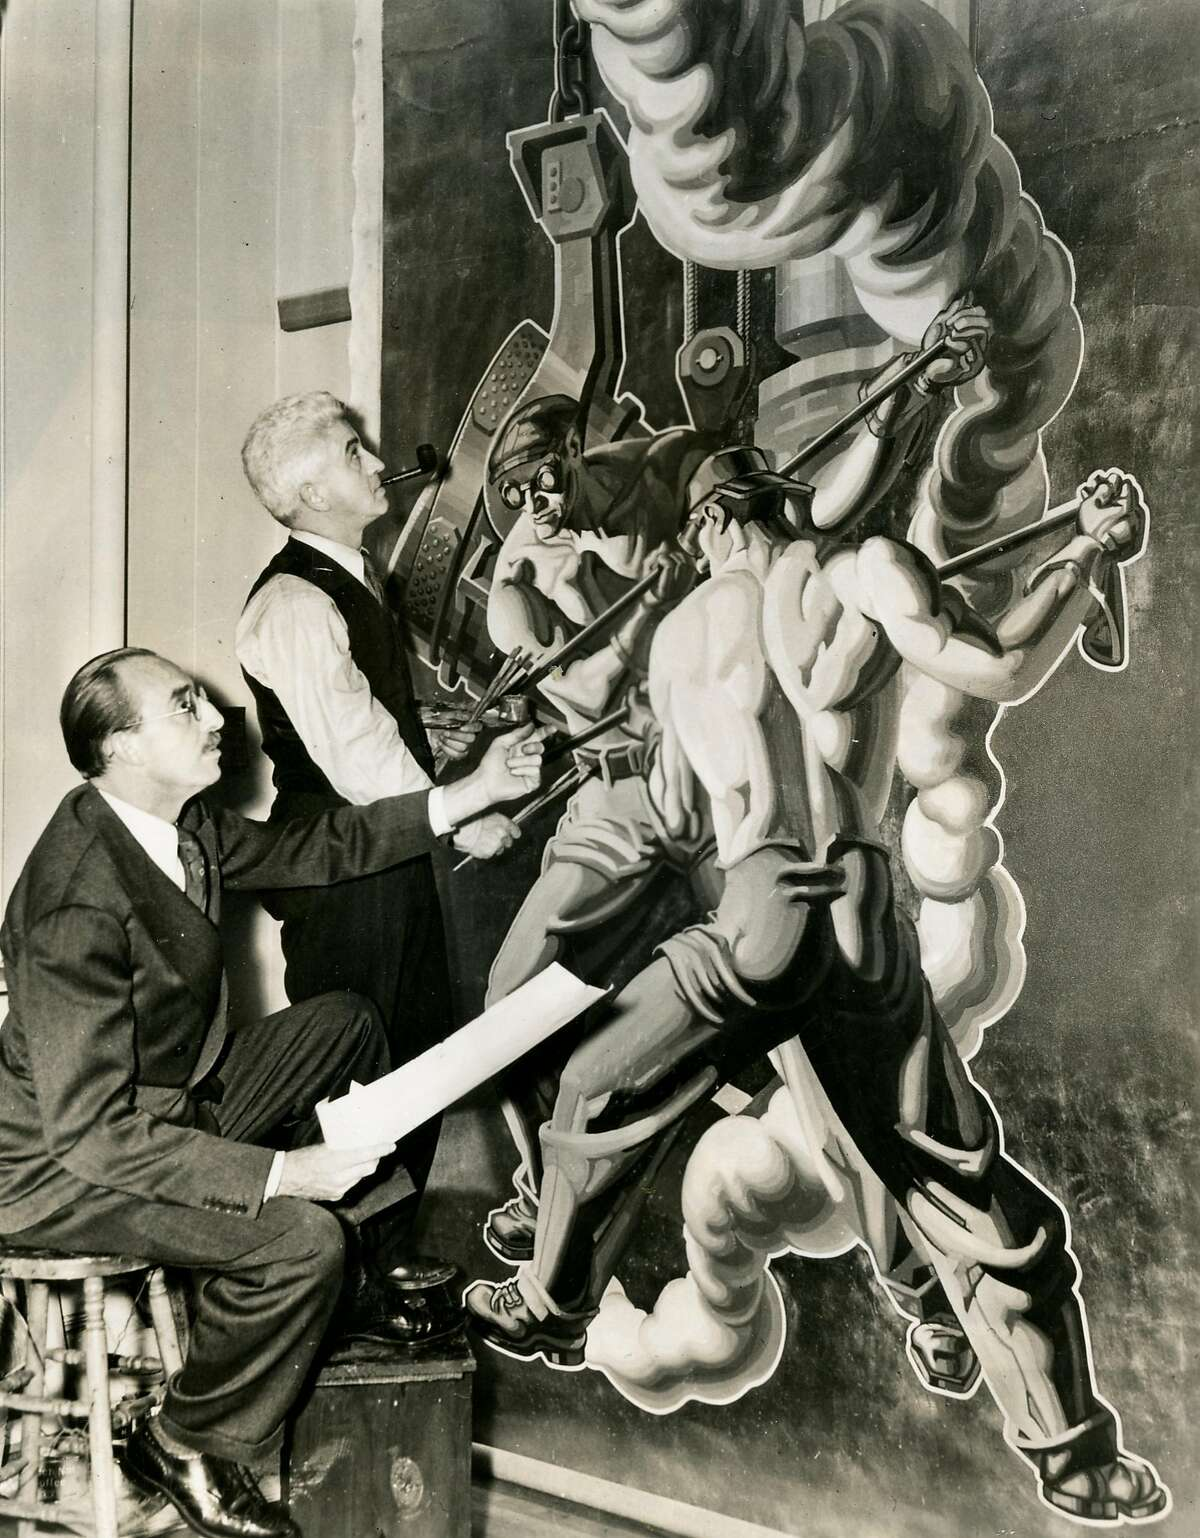 """From the back of the photo: """"Featured in the General Motors exhibit at the San Francisco Fair, on Treasure Island in 1939, are the murals """"Strength and Safety,"""" designed by Dean Cornwell, N.A., and executed by George Davidson, A.N.A., and Carlo Ciampagliia, A.N.A. Done in full color on canvas, they were in the exhibit of the Fisher Body Division. The murals were characterized by experts as among the finest artistic endeavors to be seen at the fair, ranking with other important works of Cornwell, one of America's foremost artists. In the above photo, Cornwell (seated) is shown with Ciampaglia, as the murals neared completion in the artist's studio."""""""